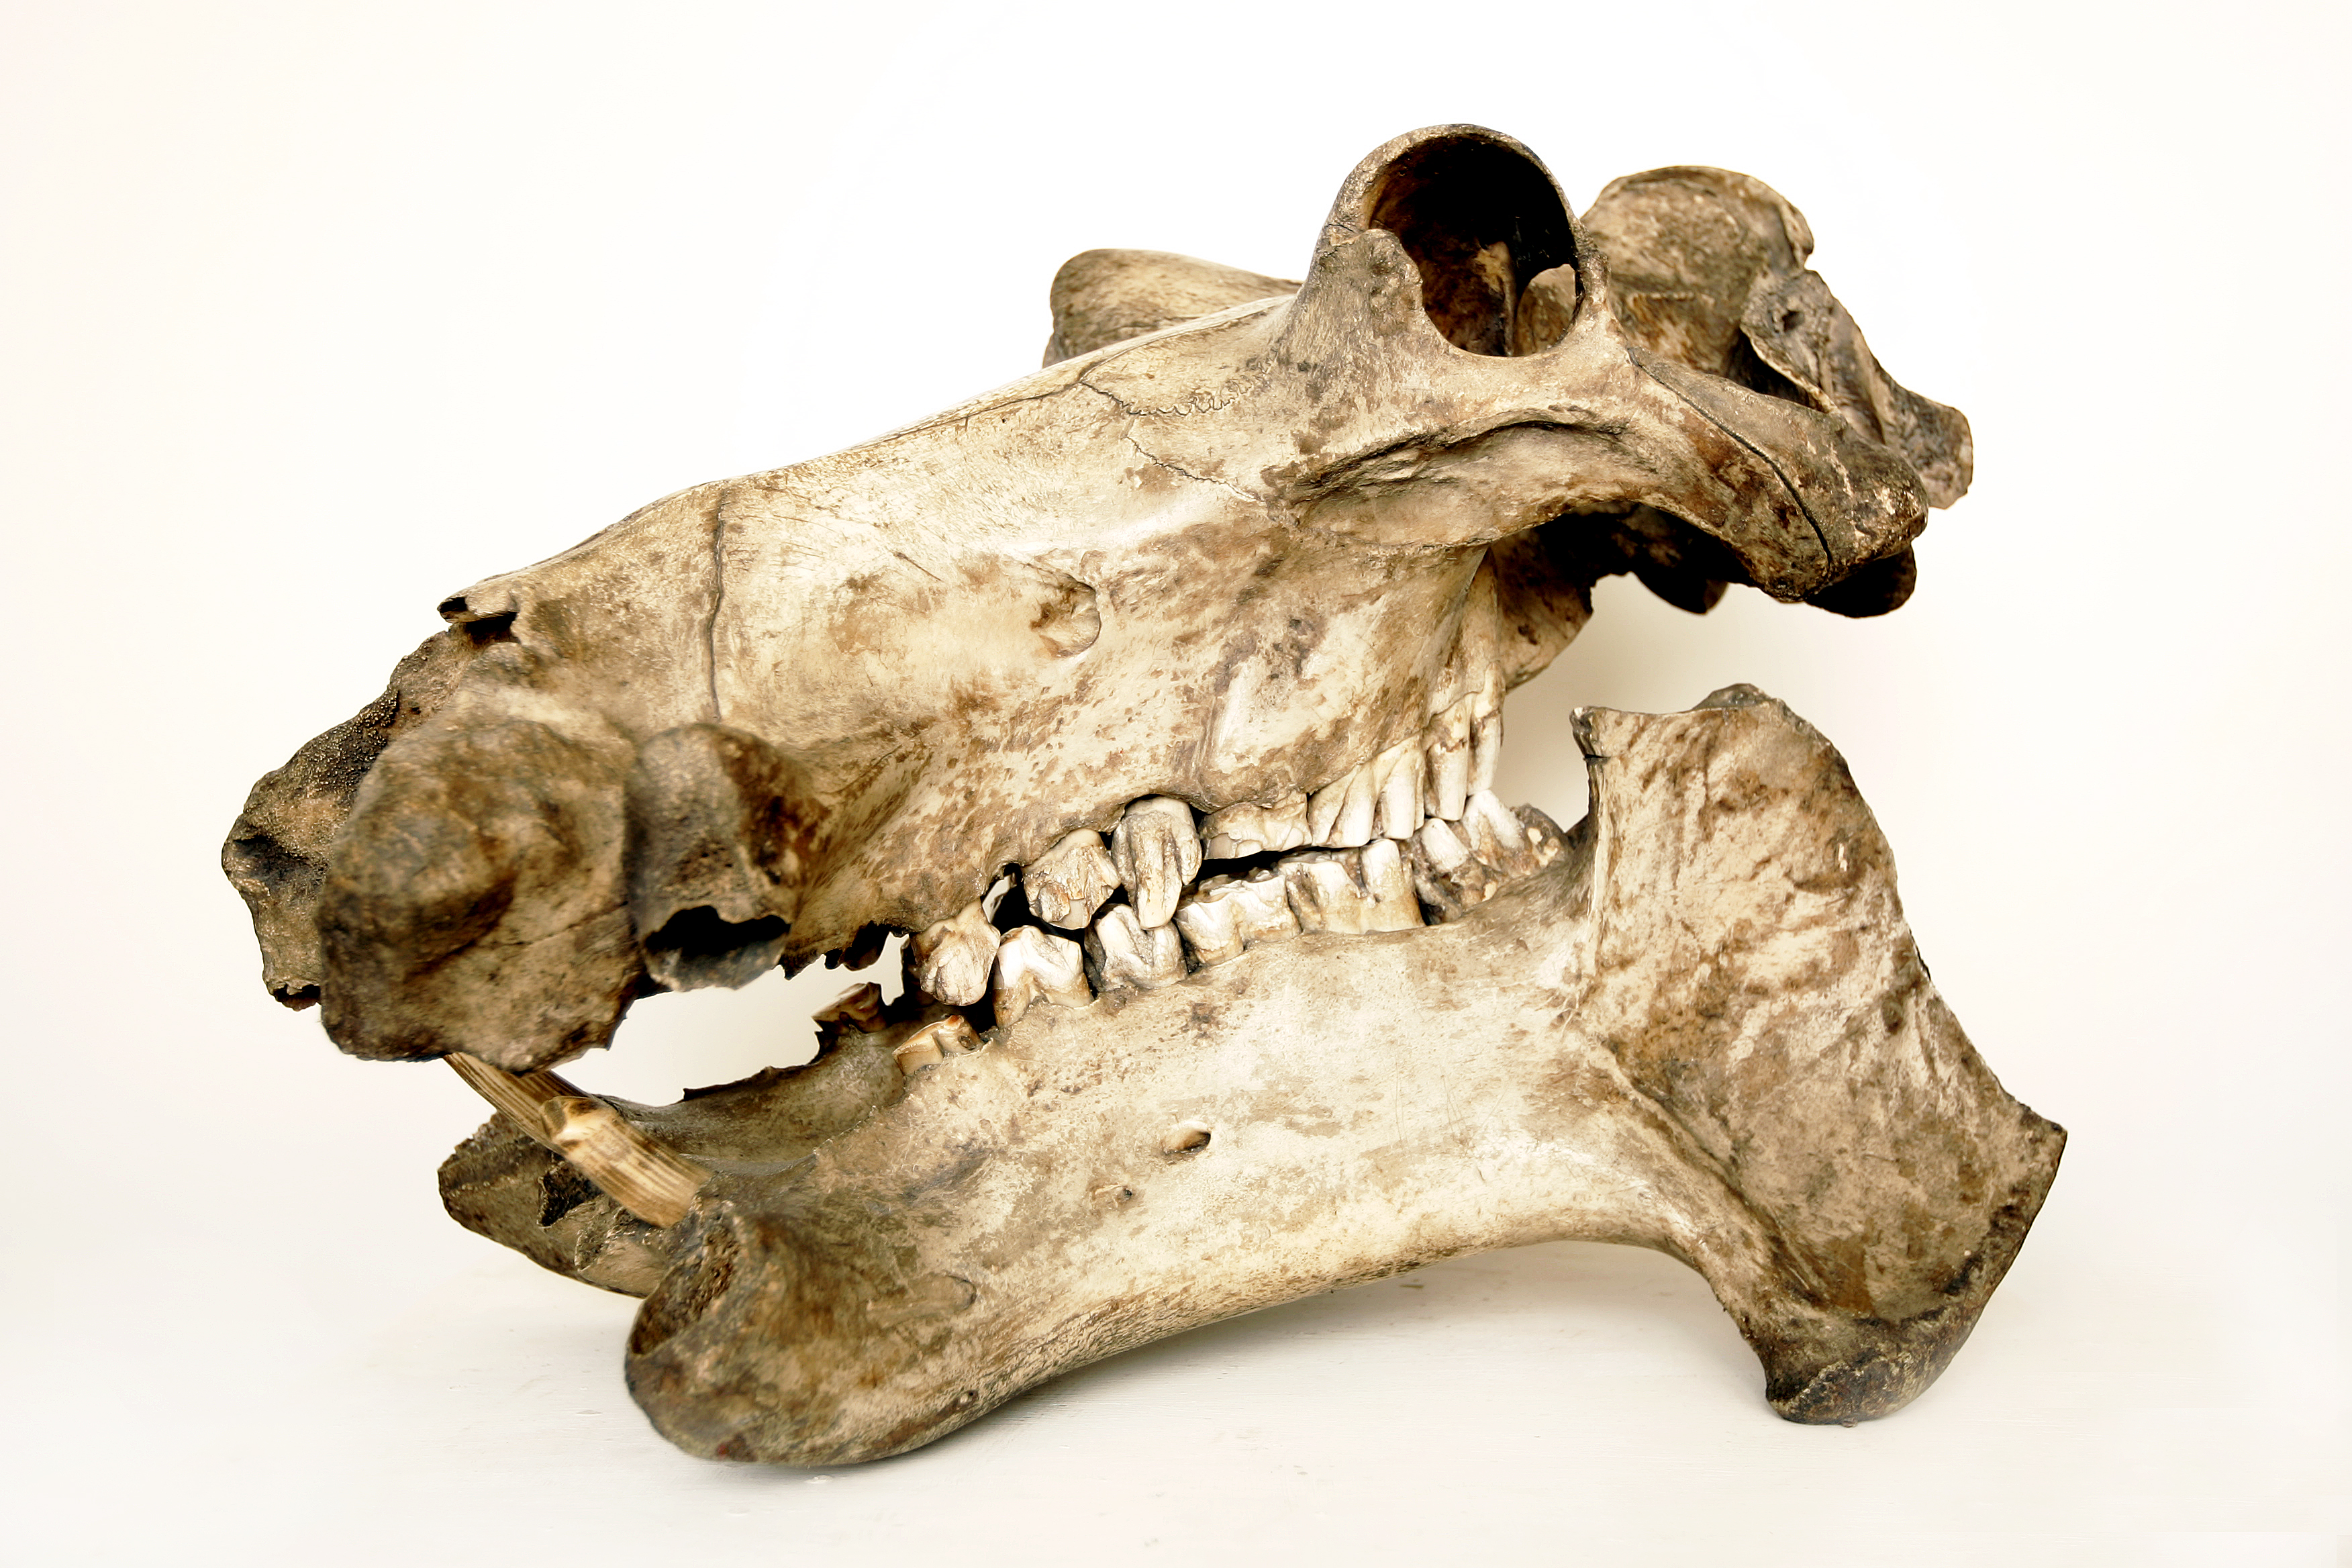 A hippo skull with visible teeth